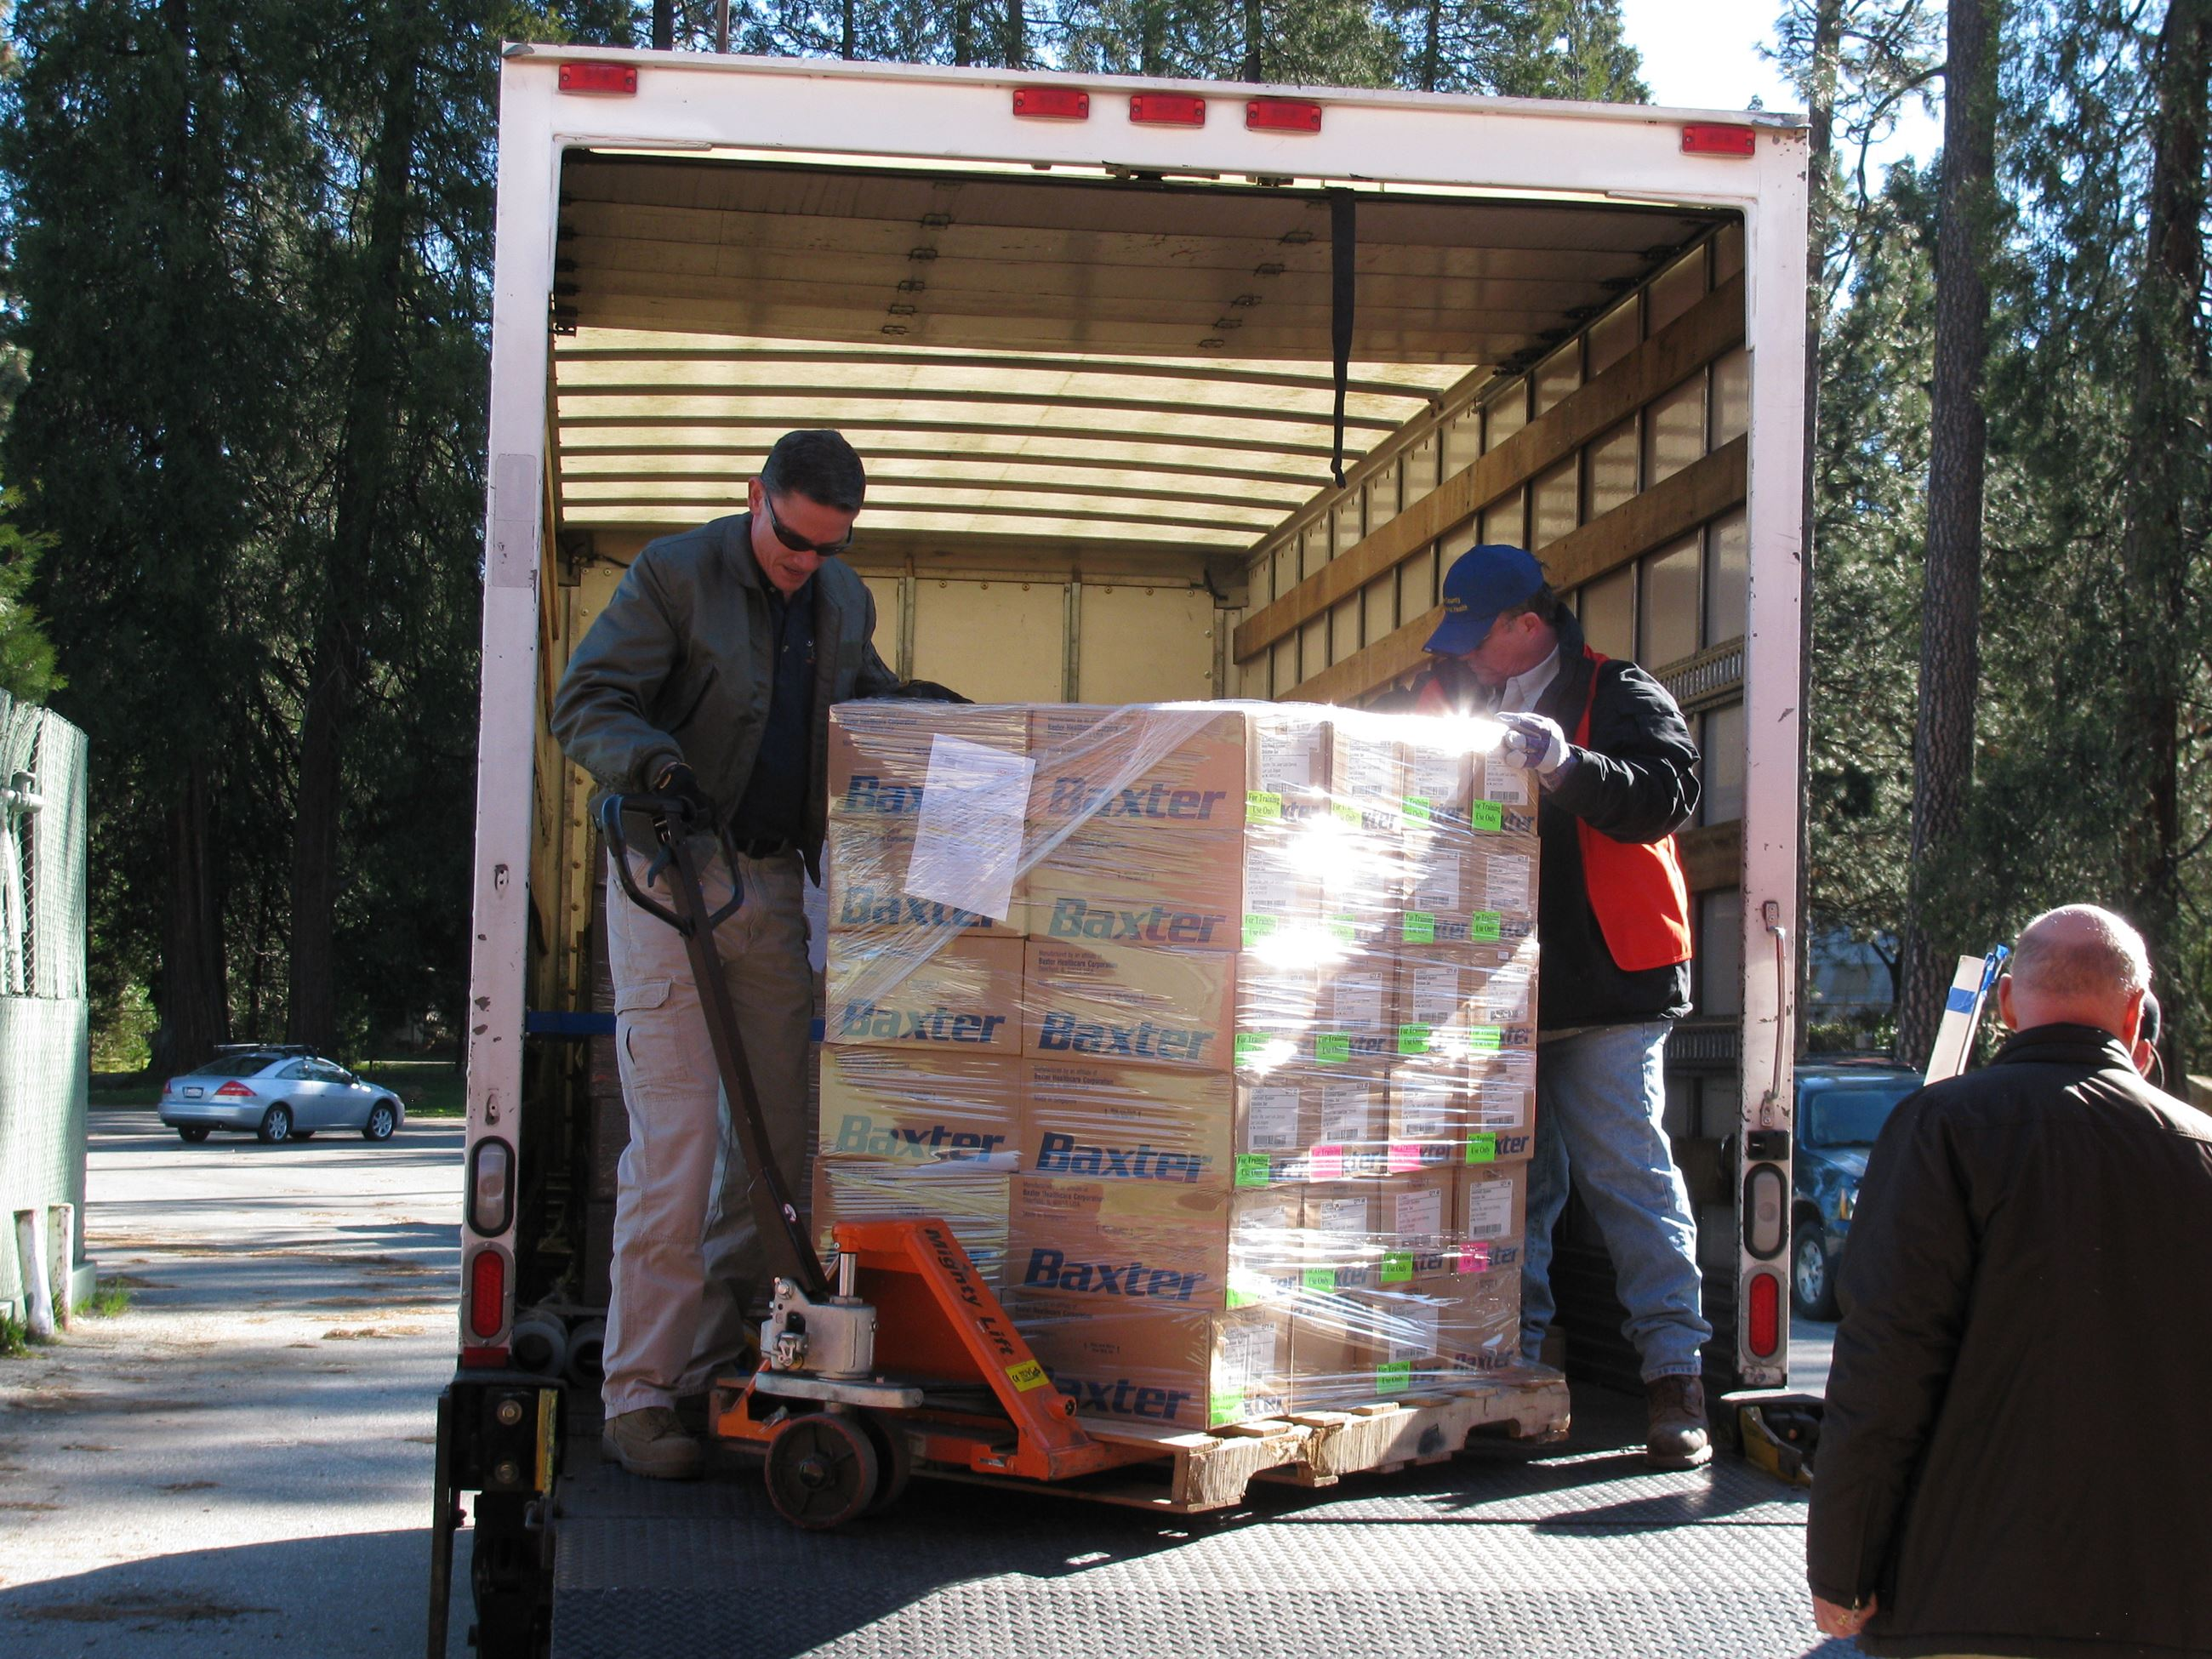 Two men unloading truck using large dolley to move pallet